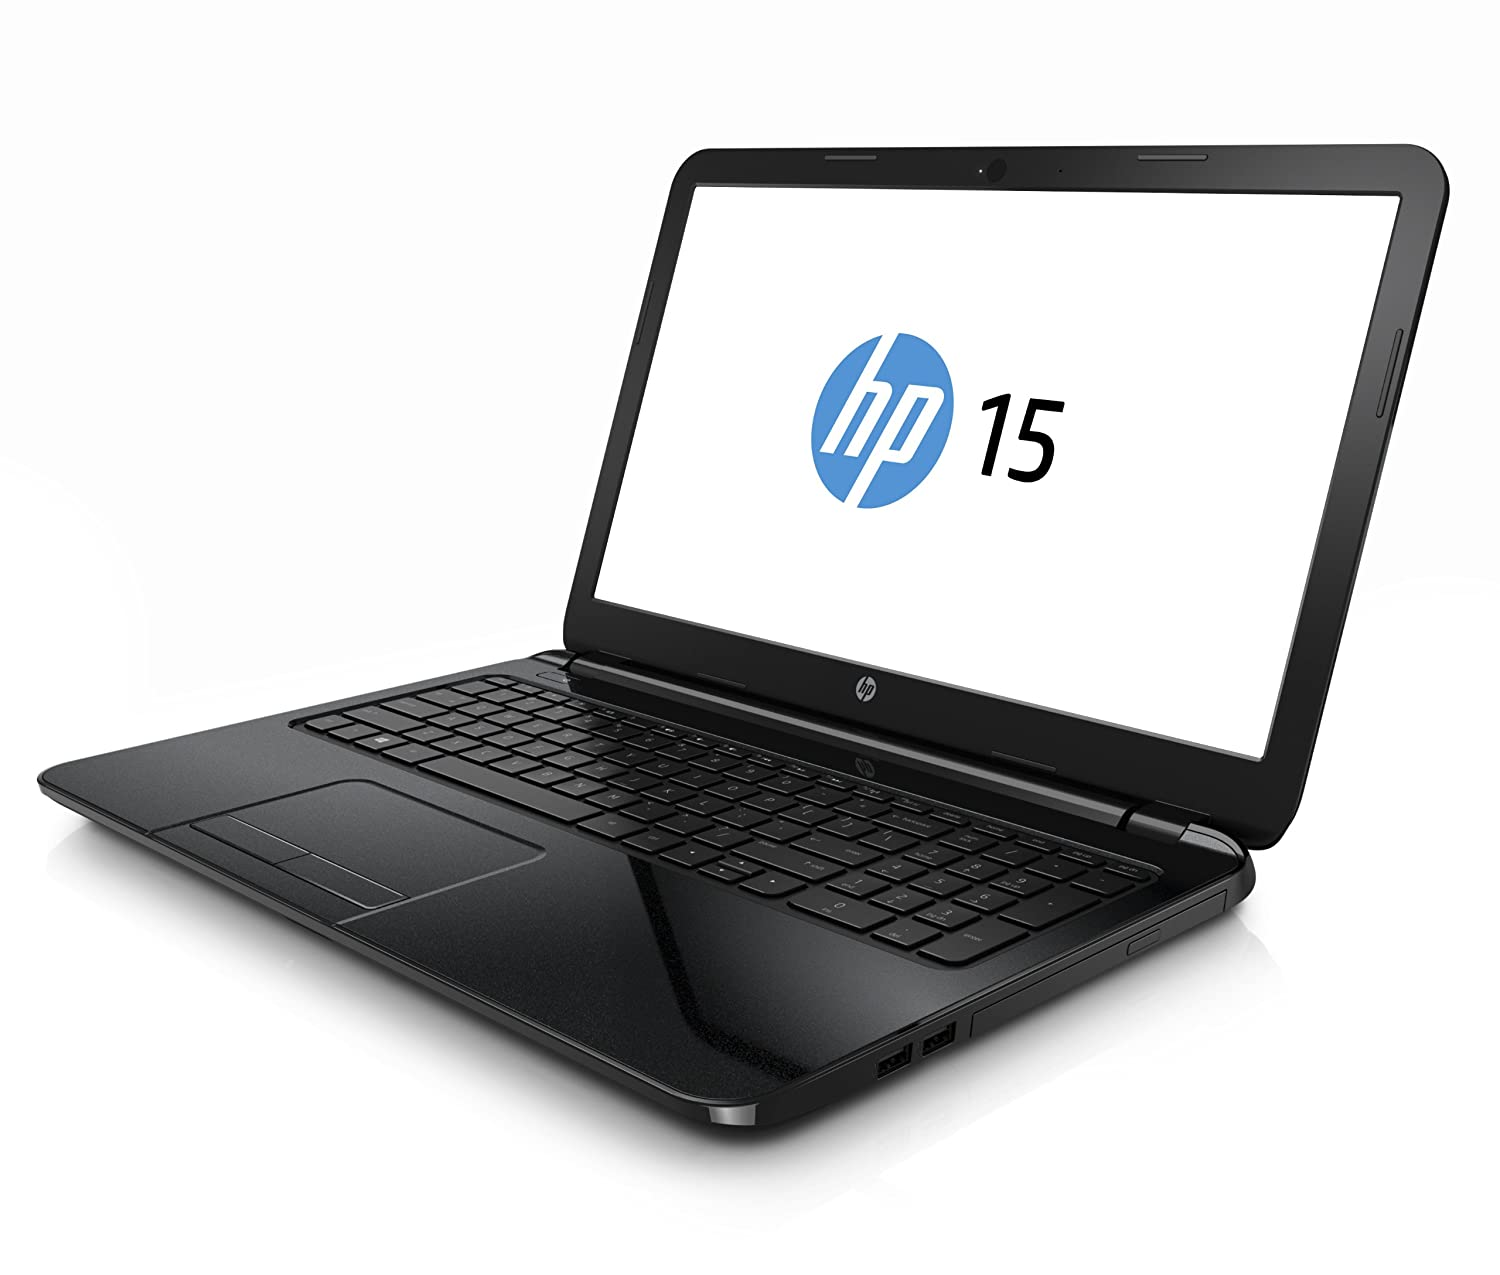 Laptop for sale in Trinidad